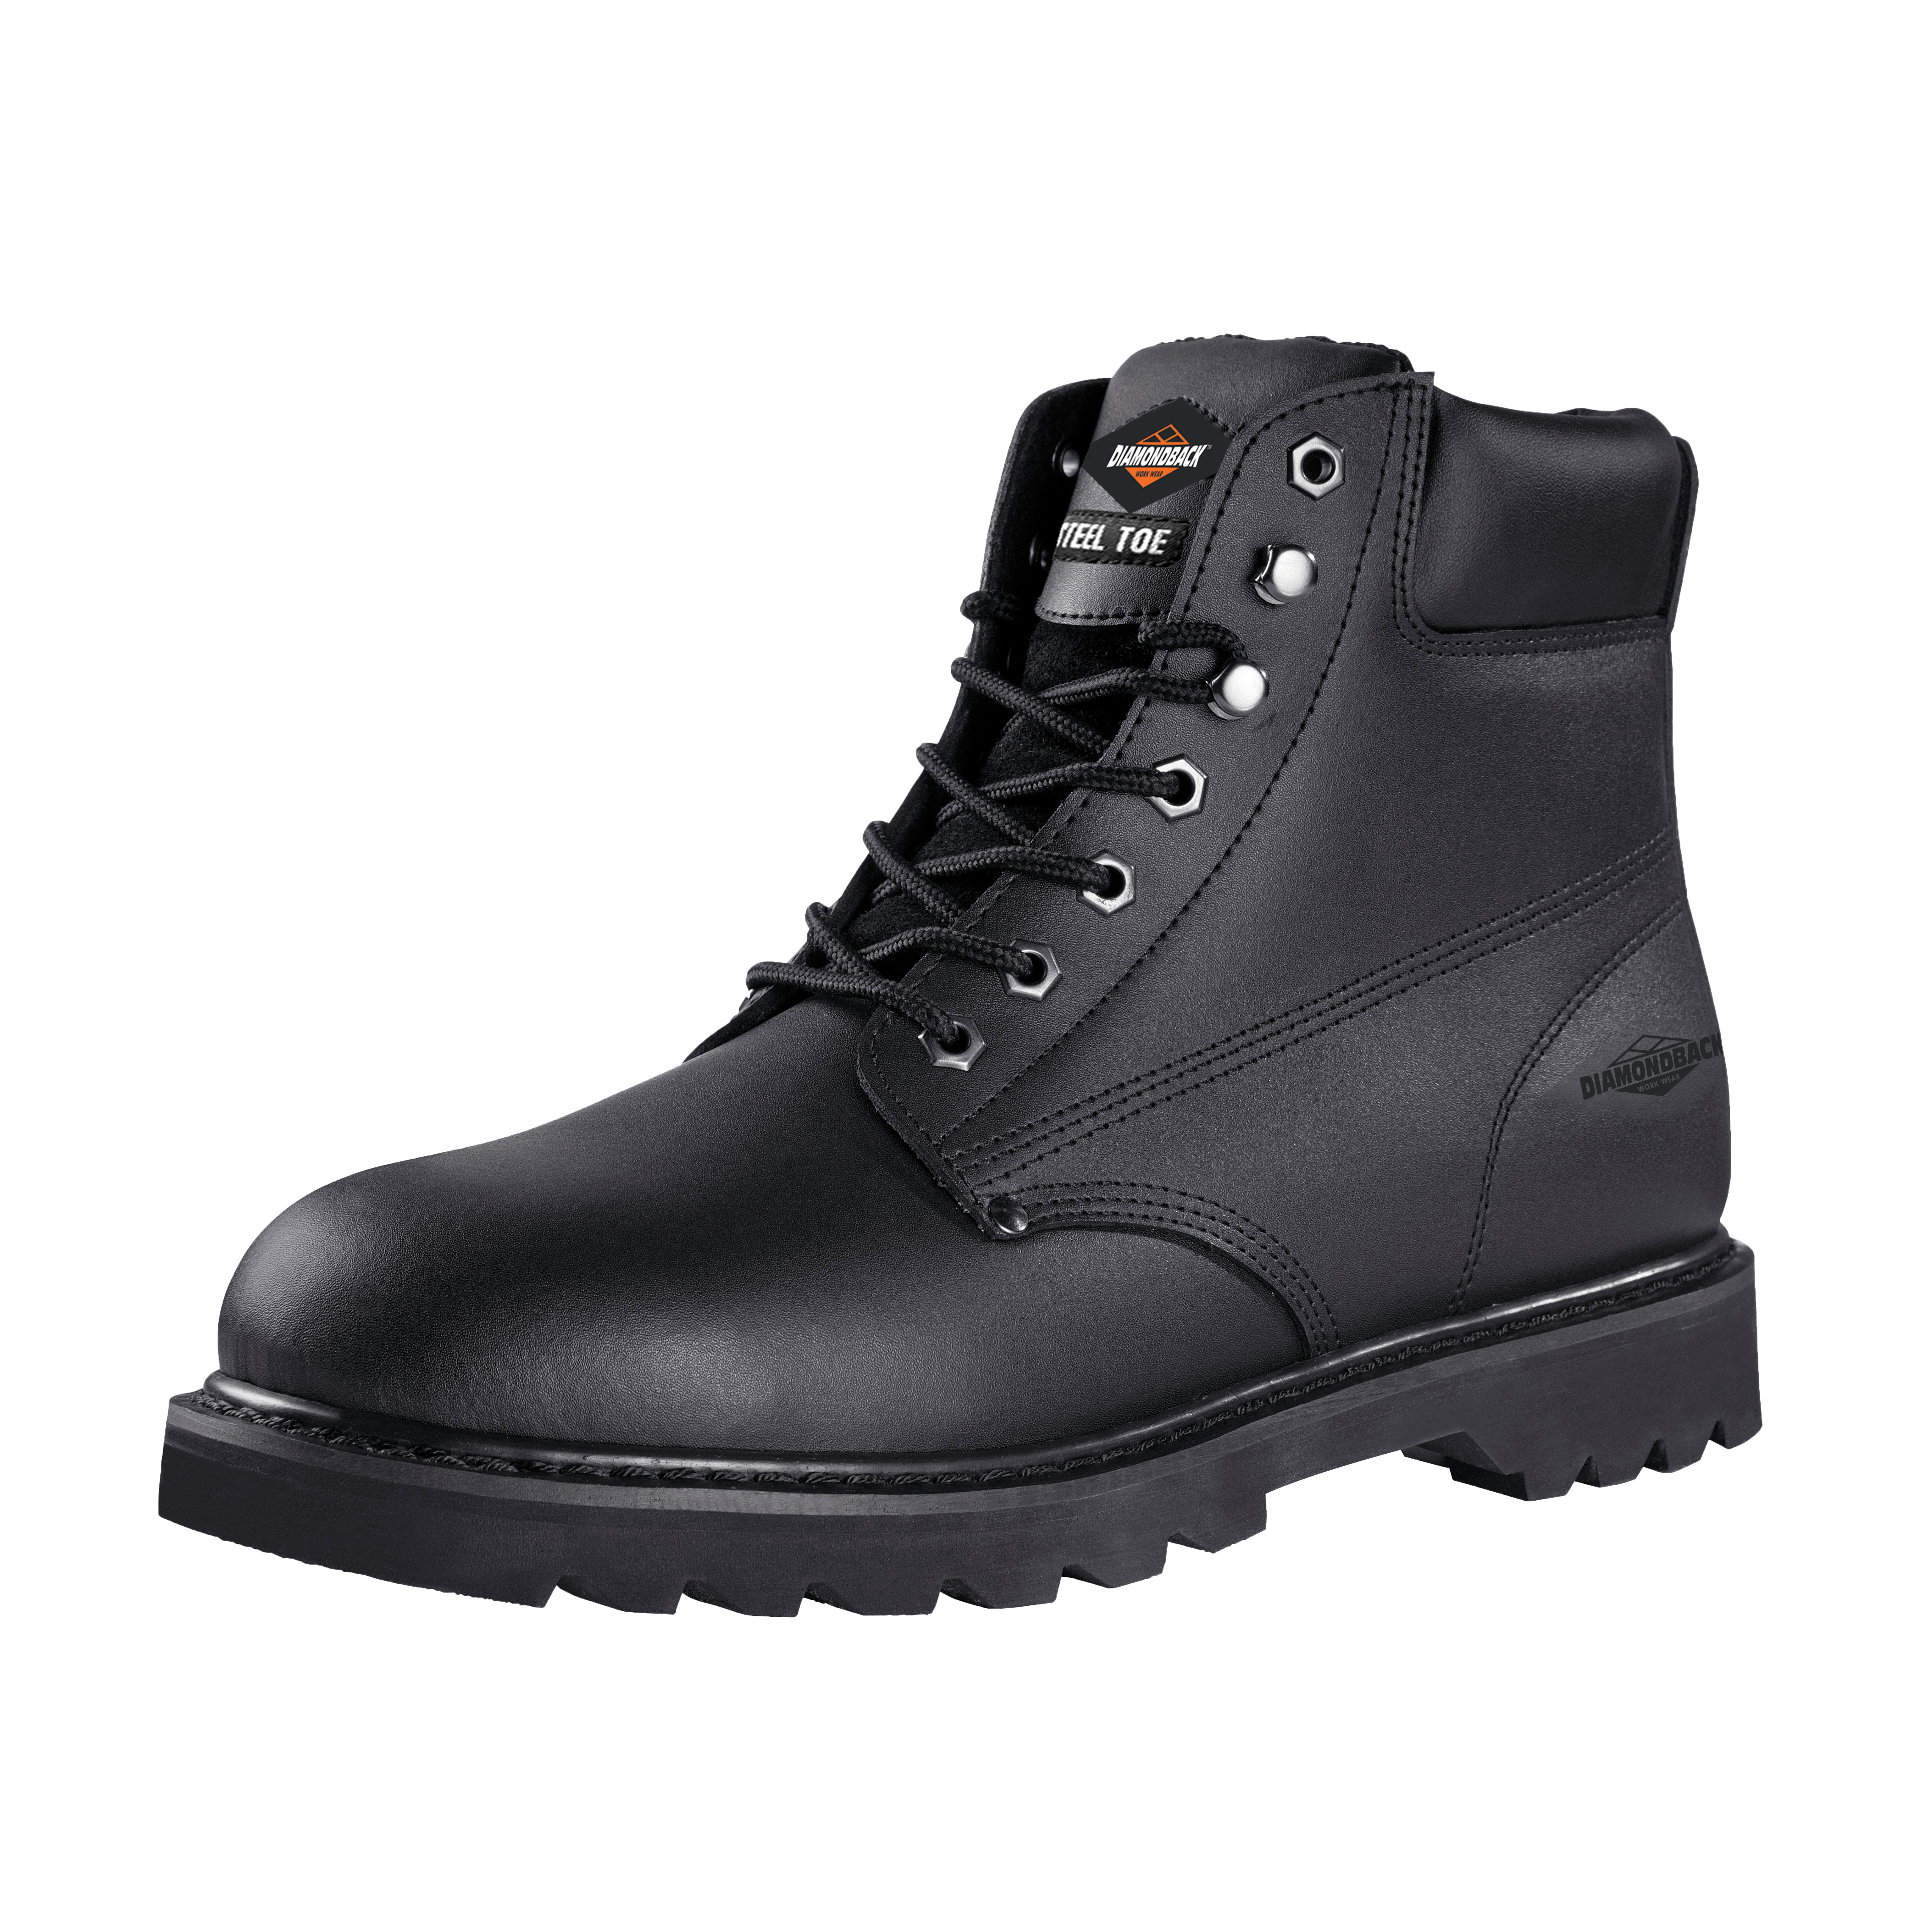 Picture of Diamondback 655SS-10.5 Work Boots, 10.5, Black, Leather Upper